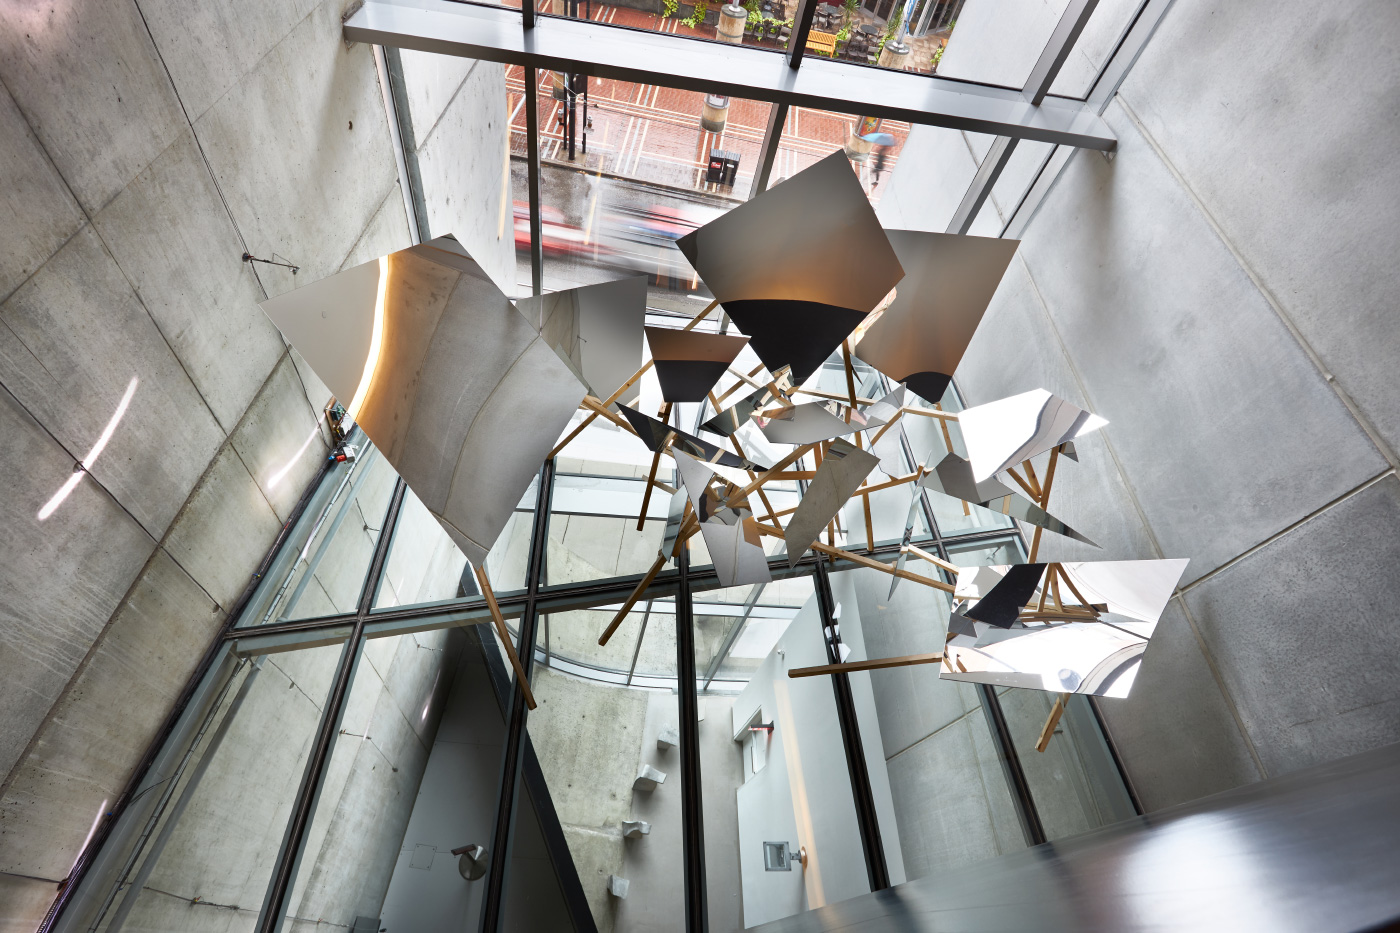 Interior photo of a metal sculpture suspended in a concrete atrium